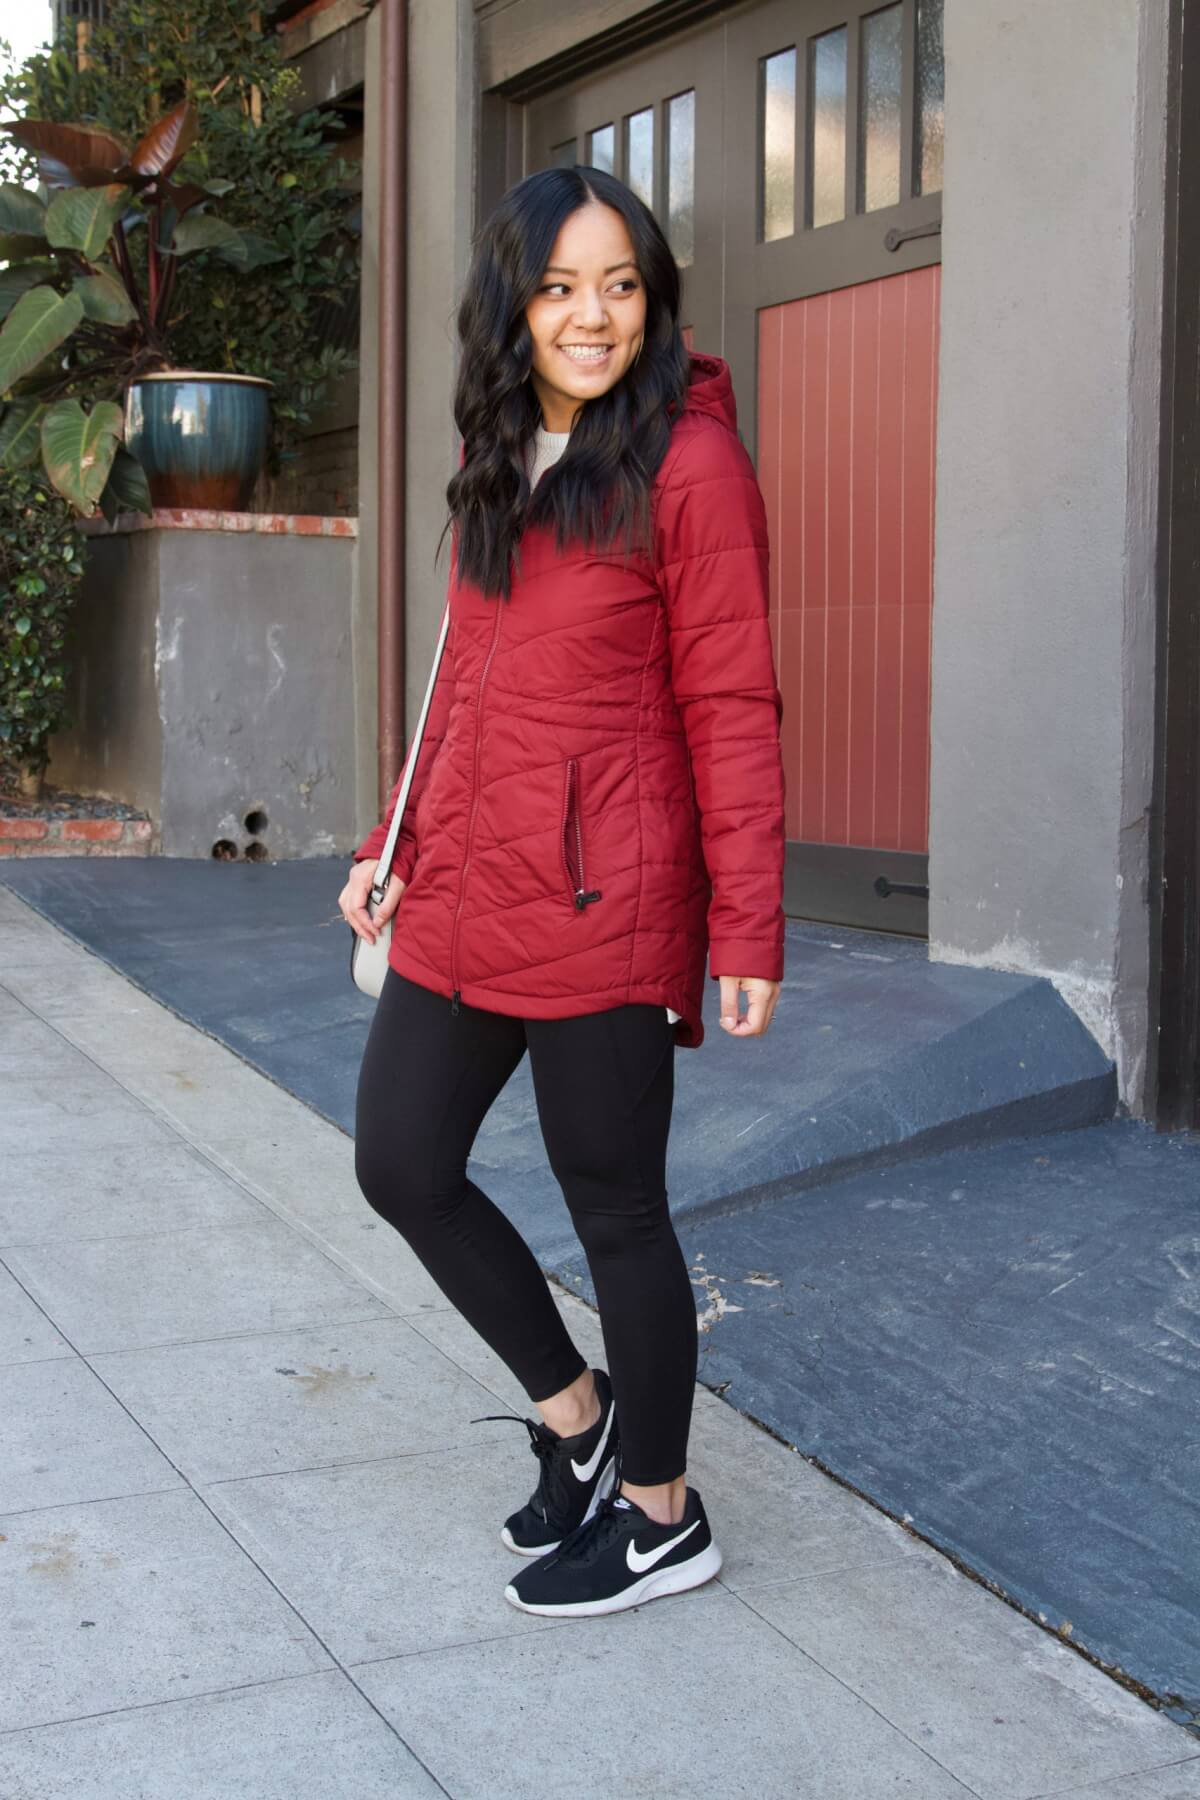 Casual Winter Outfit: white sweater + red puffer jacket + black sneakers + black leggings + grey crossbody bag + cream leather earrings